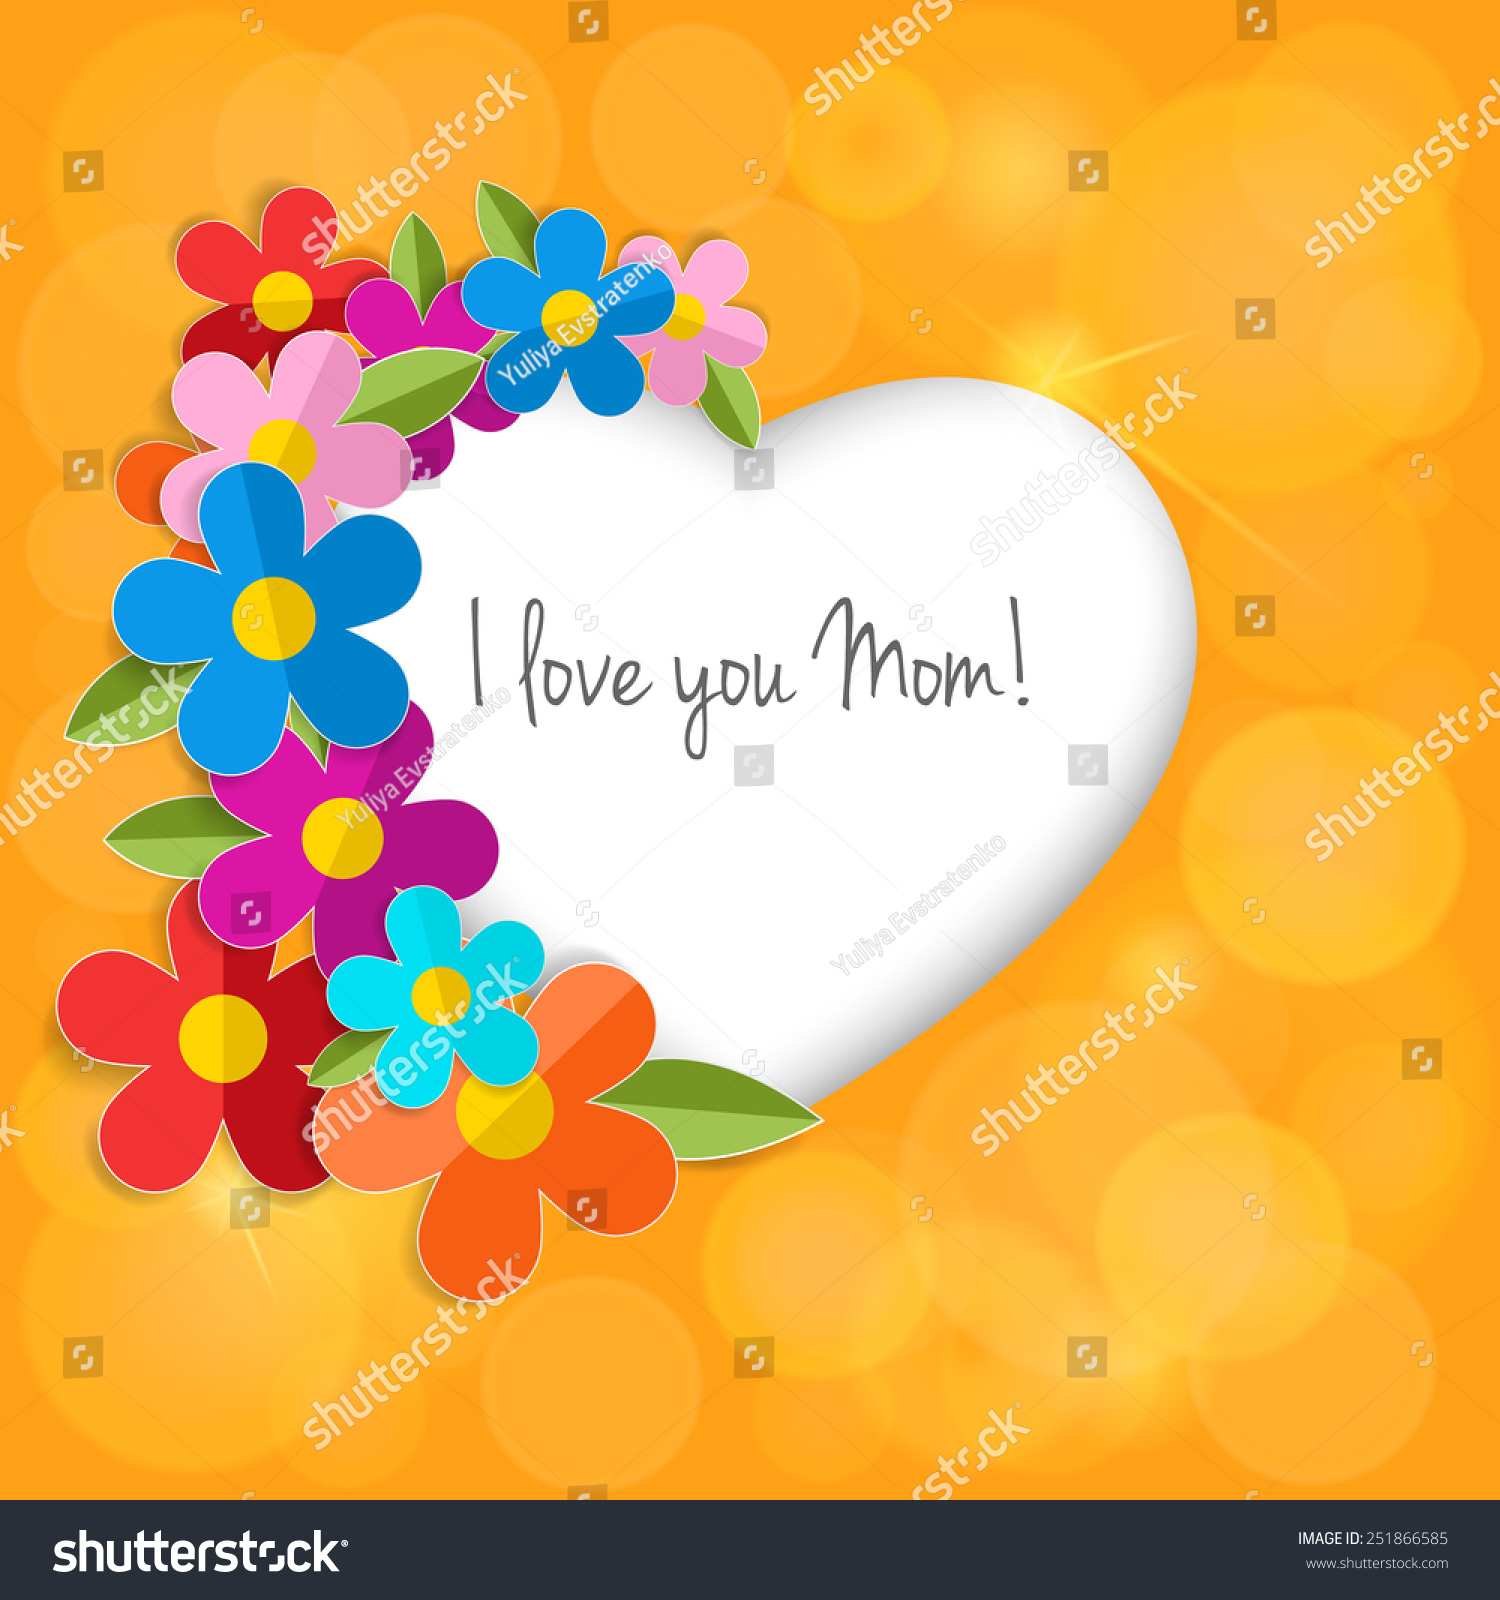 Greeting Card On Happy Mothers Day Stock Vector 251866585 - Shutterstock